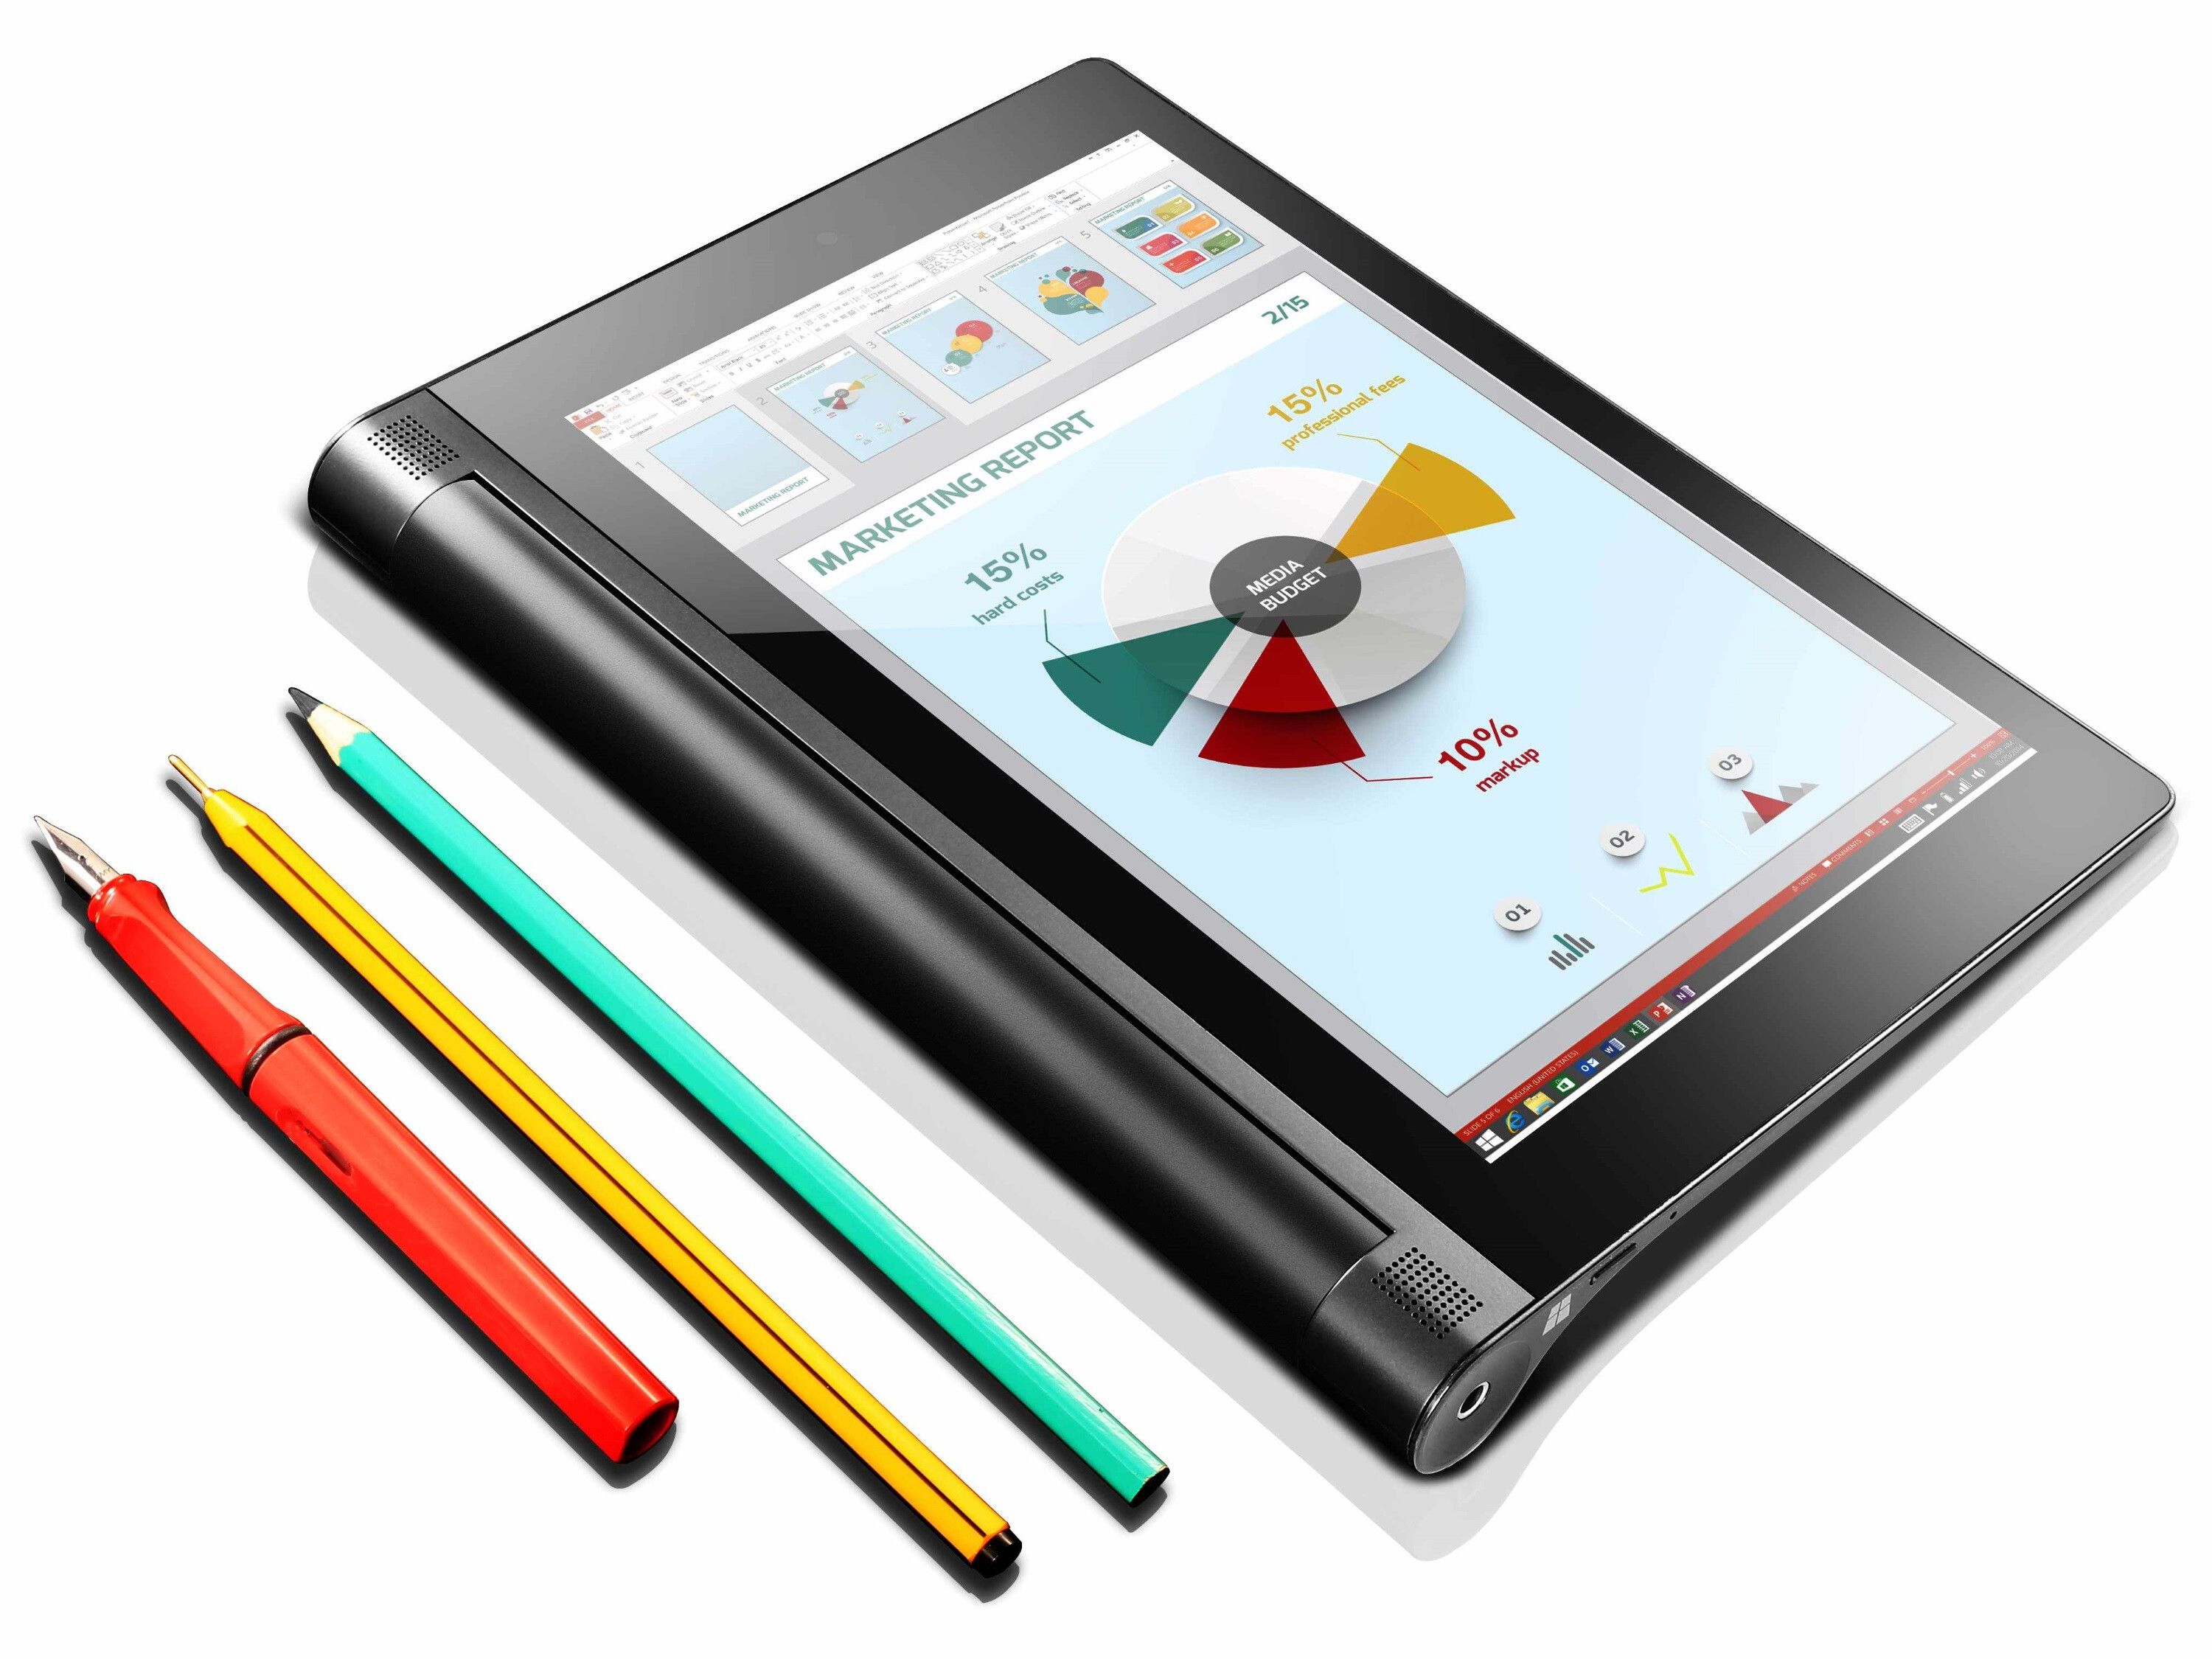 the lenovo yoga tablet 2 8 windows with anypen has a unique superpower what do you think it is. Black Bedroom Furniture Sets. Home Design Ideas